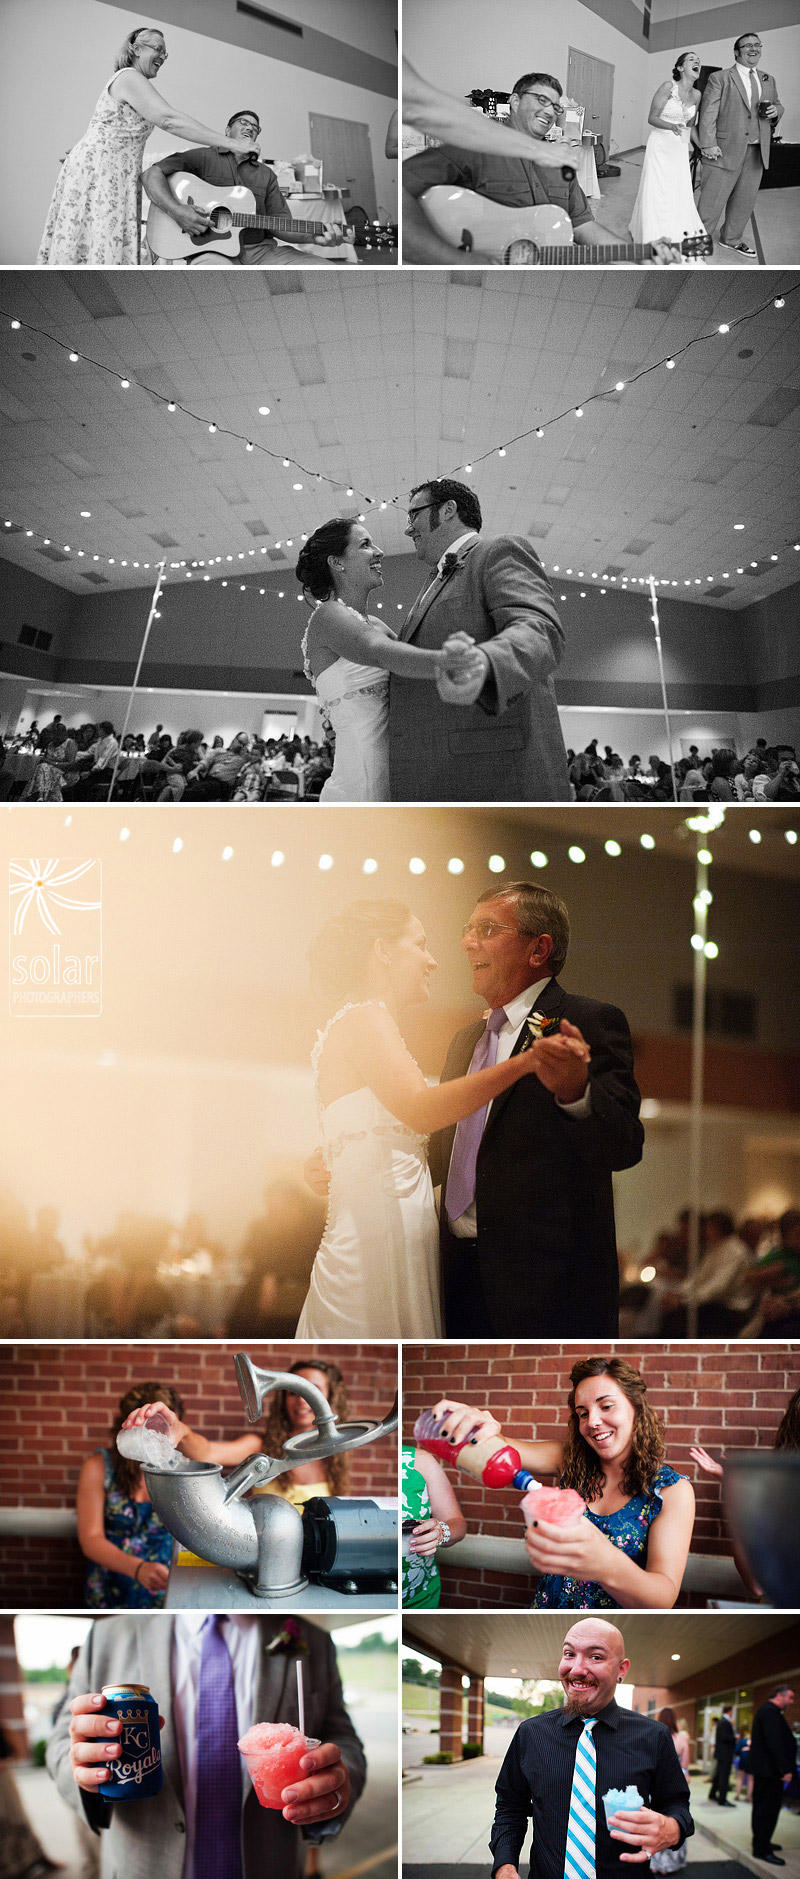 Sweet first dances at a wedding and sno cones.